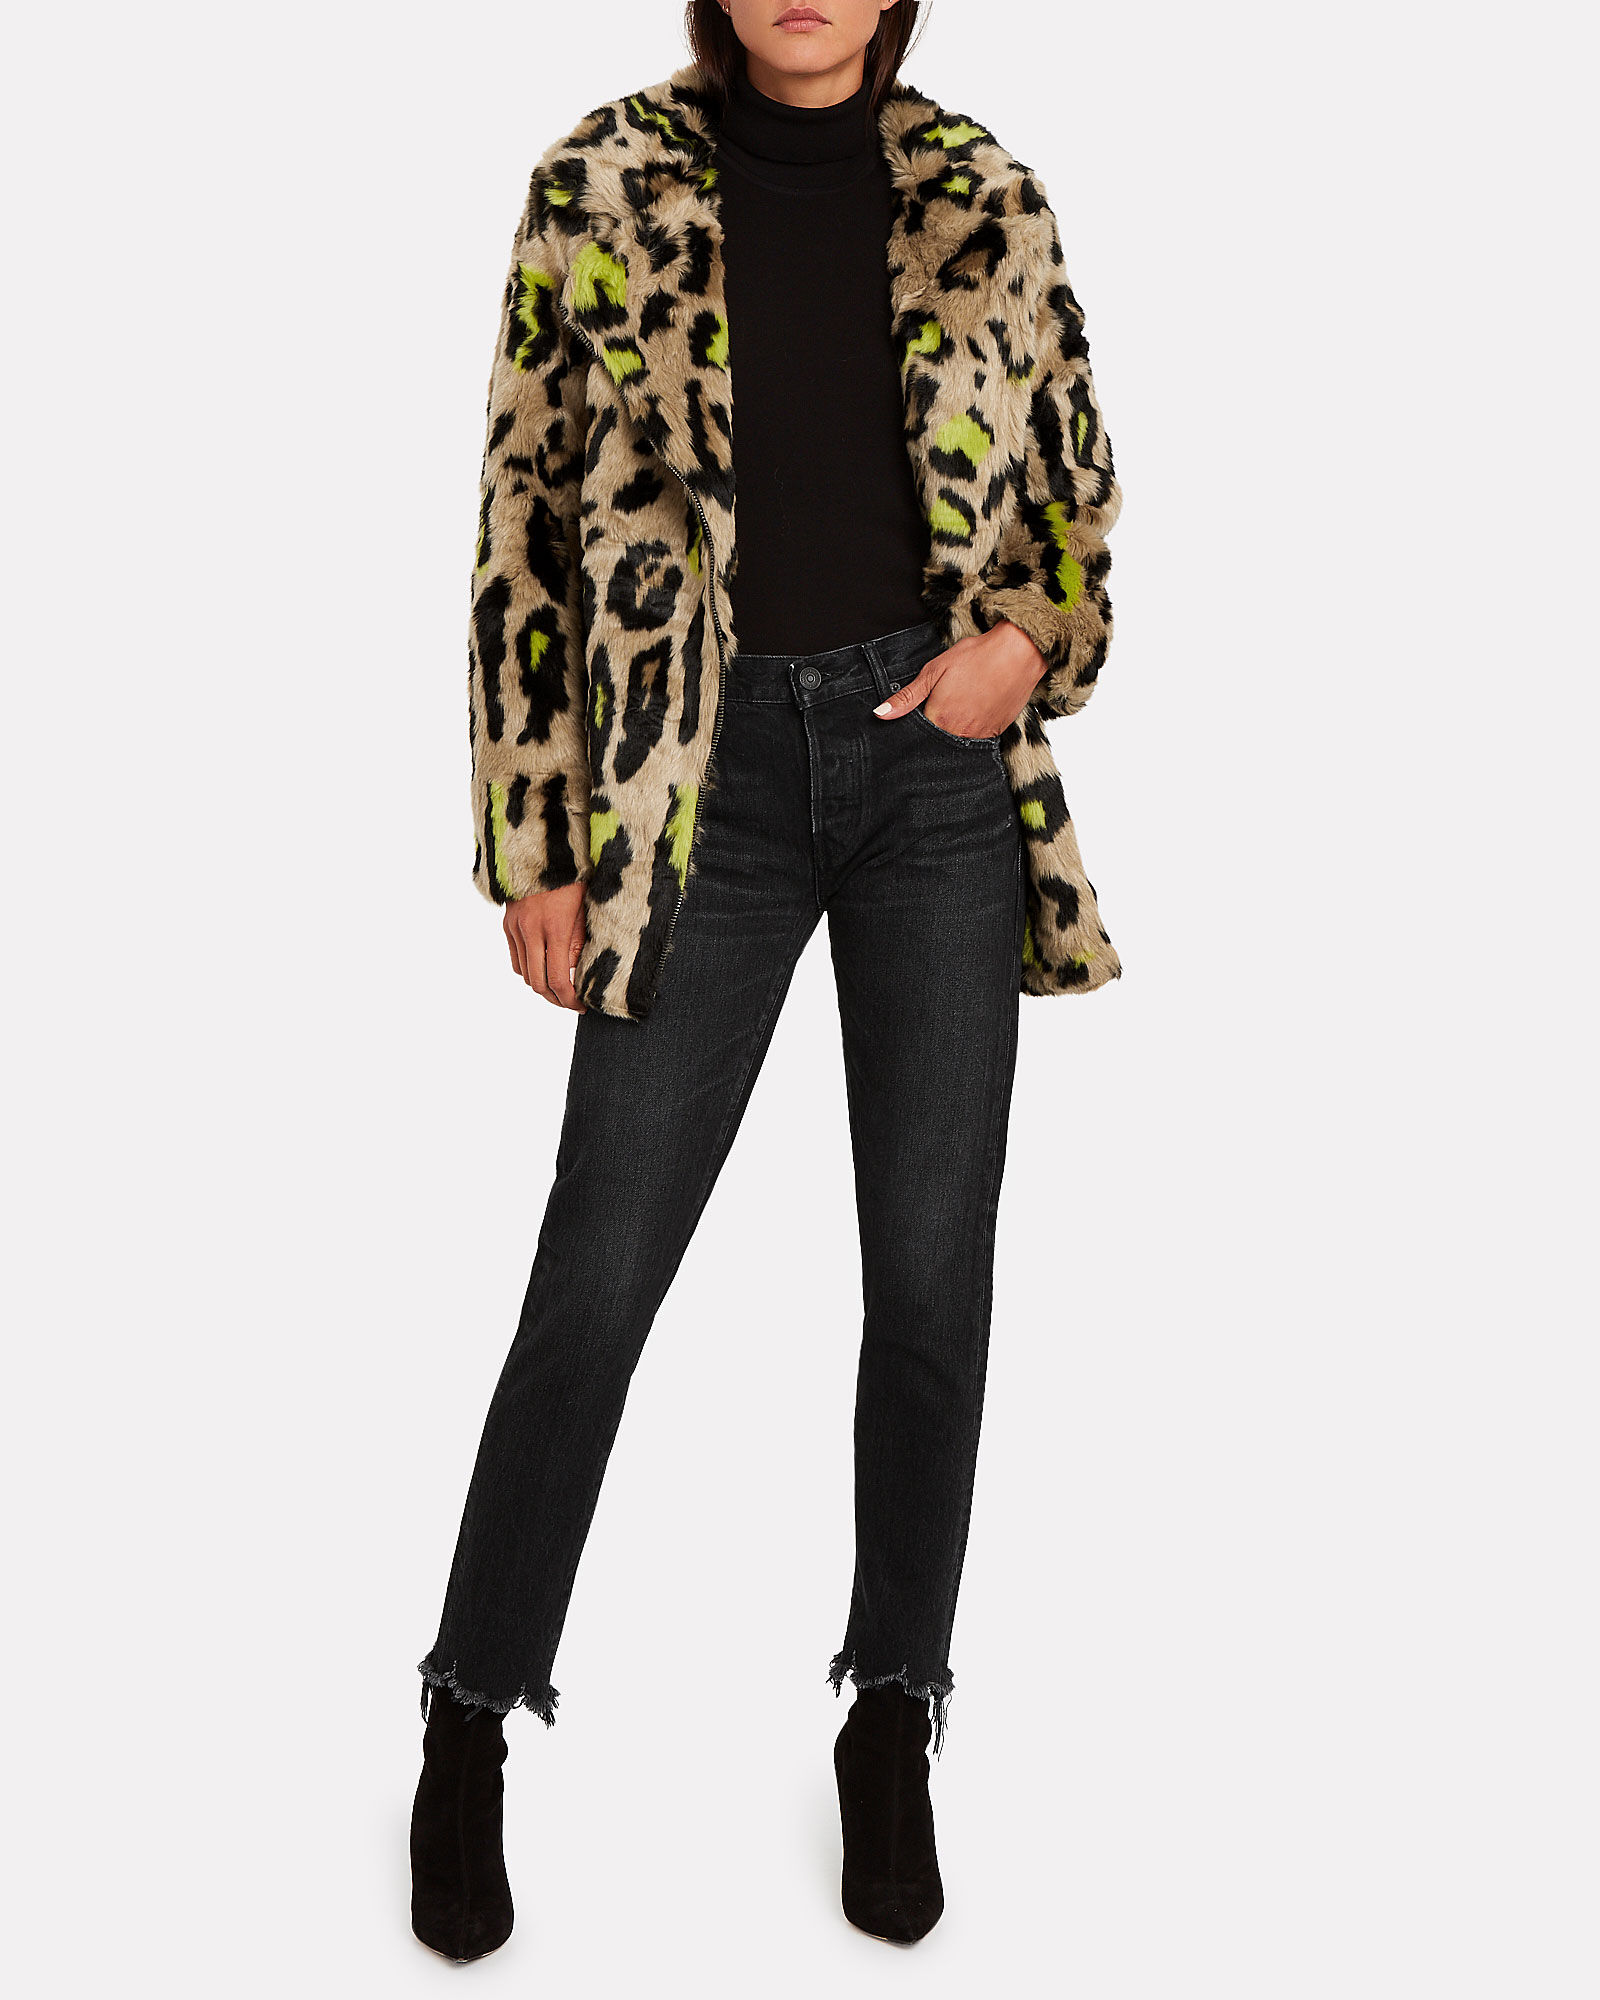 Chloe Leopard Faux Fur Coat, MULTI, hi-res